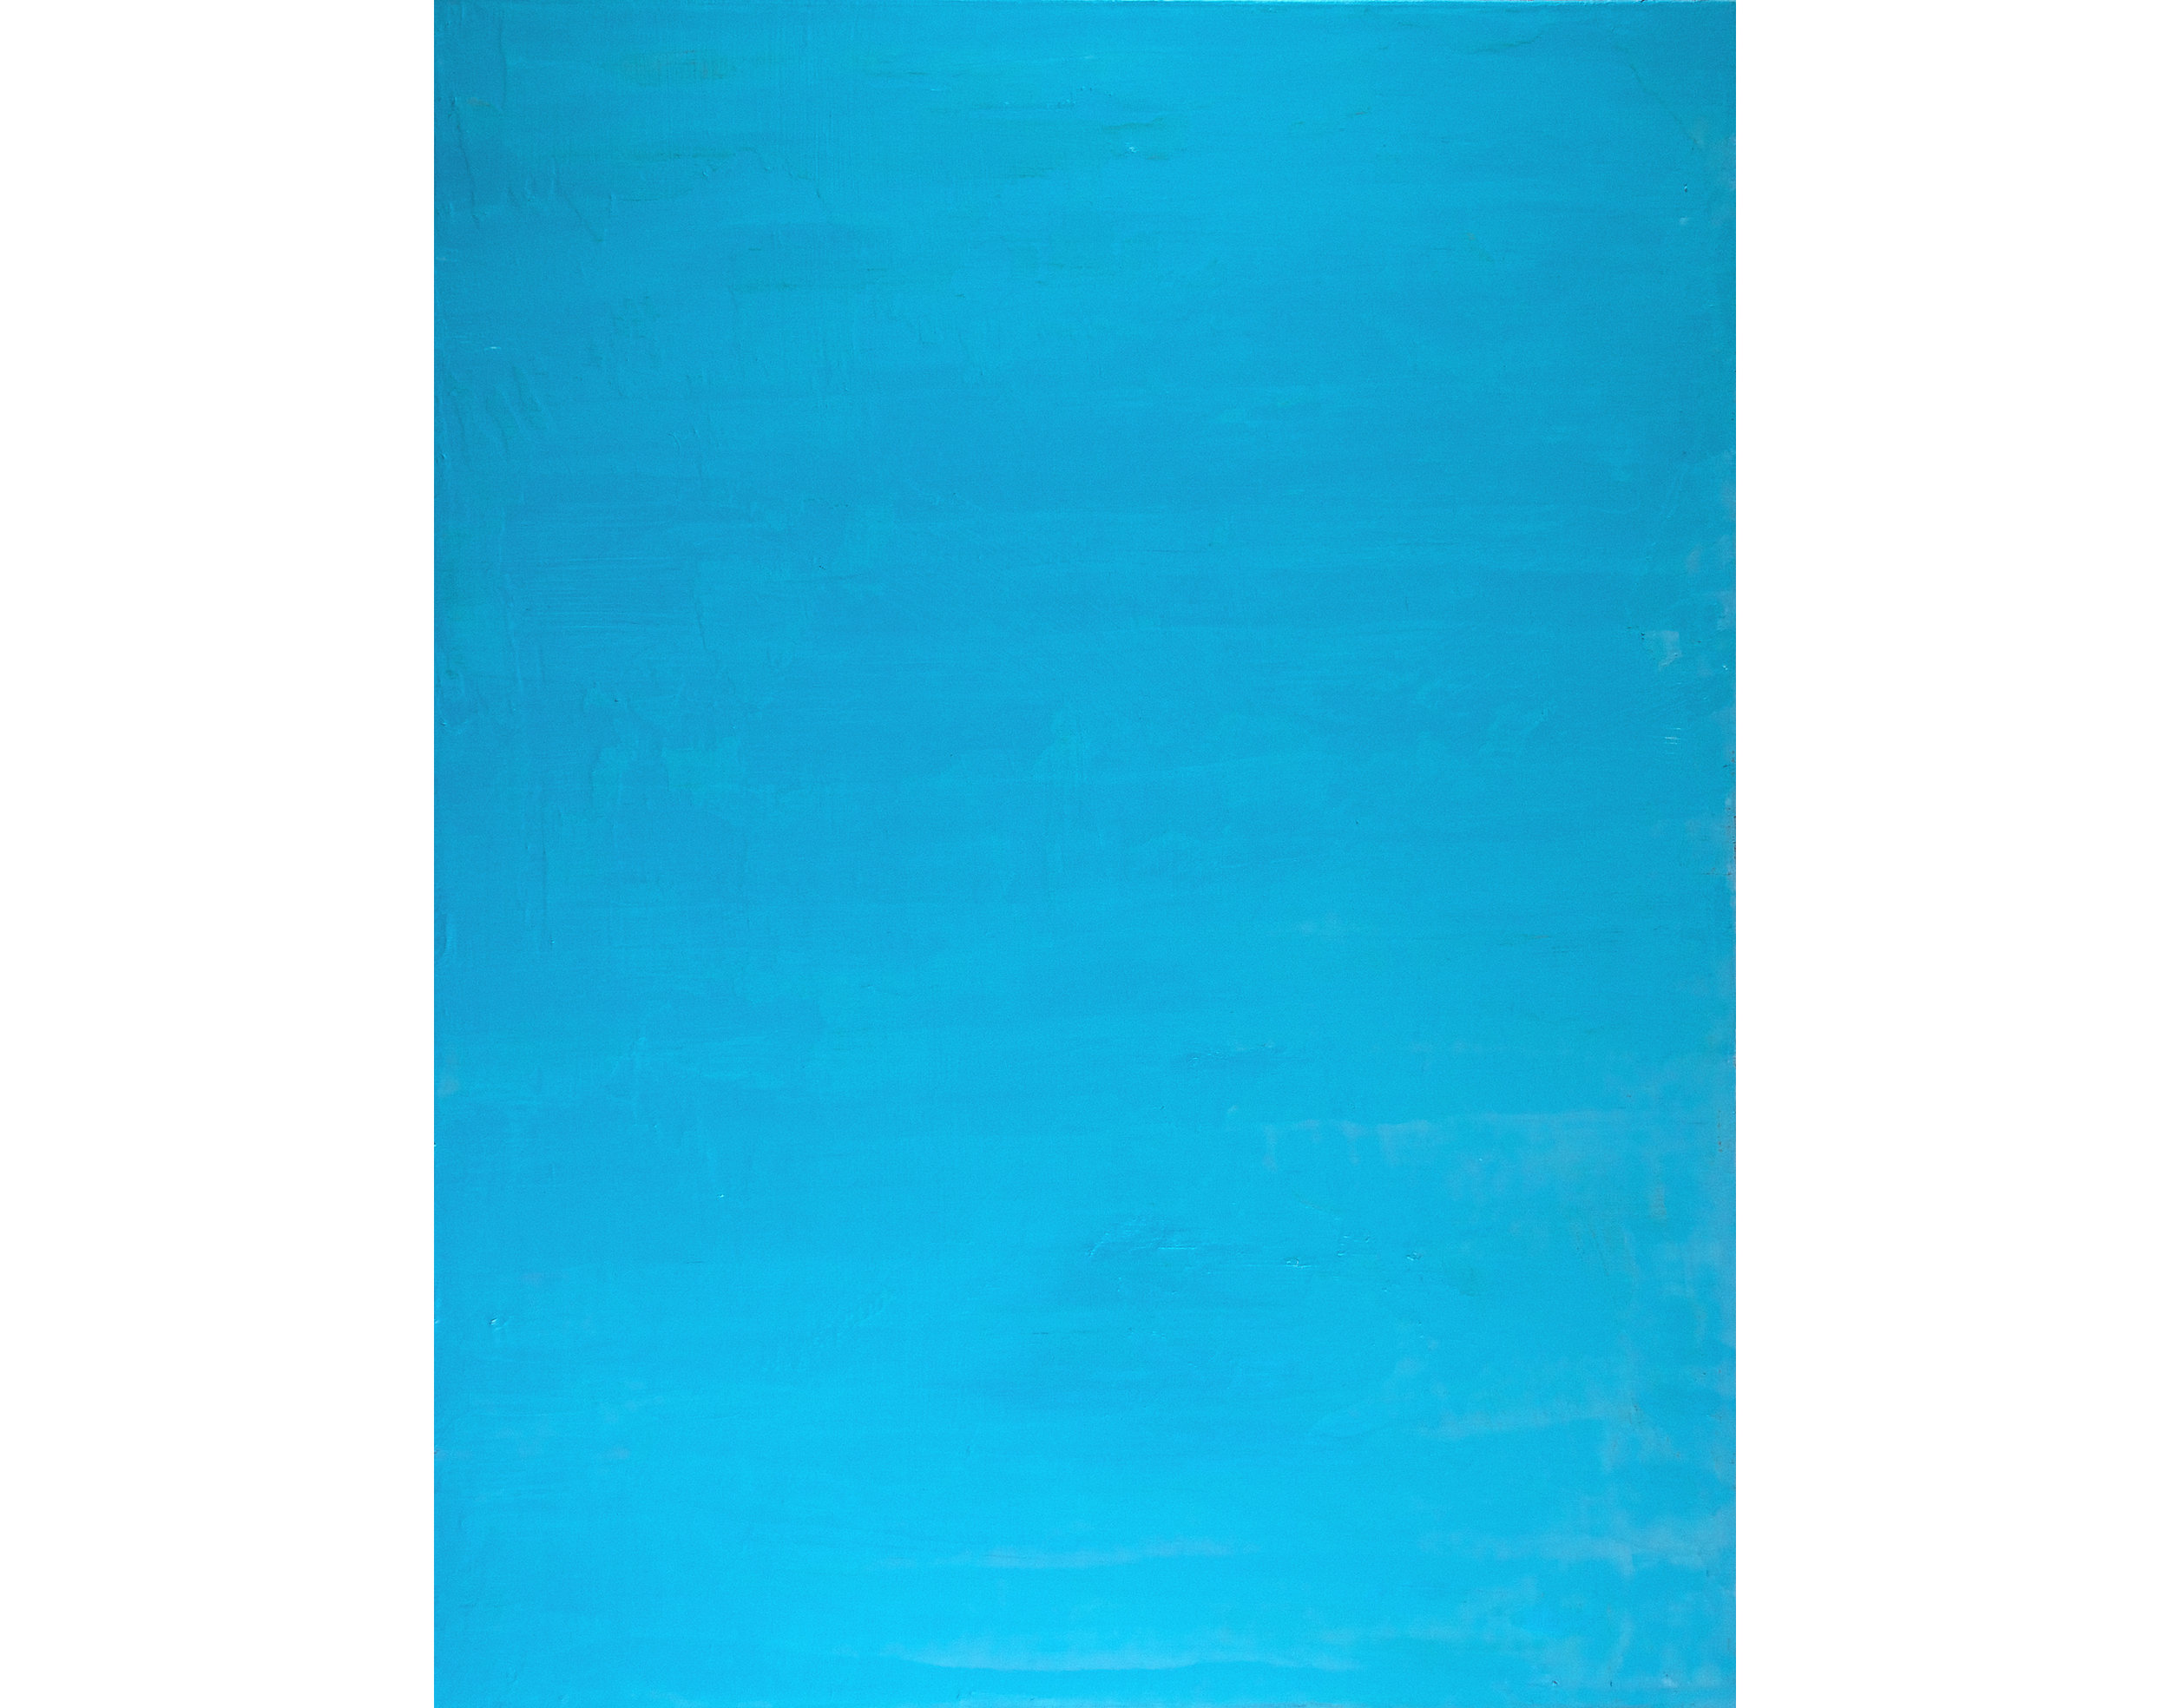 Knives Blue, 2015, Oil on Linen, 34 x 26 inches